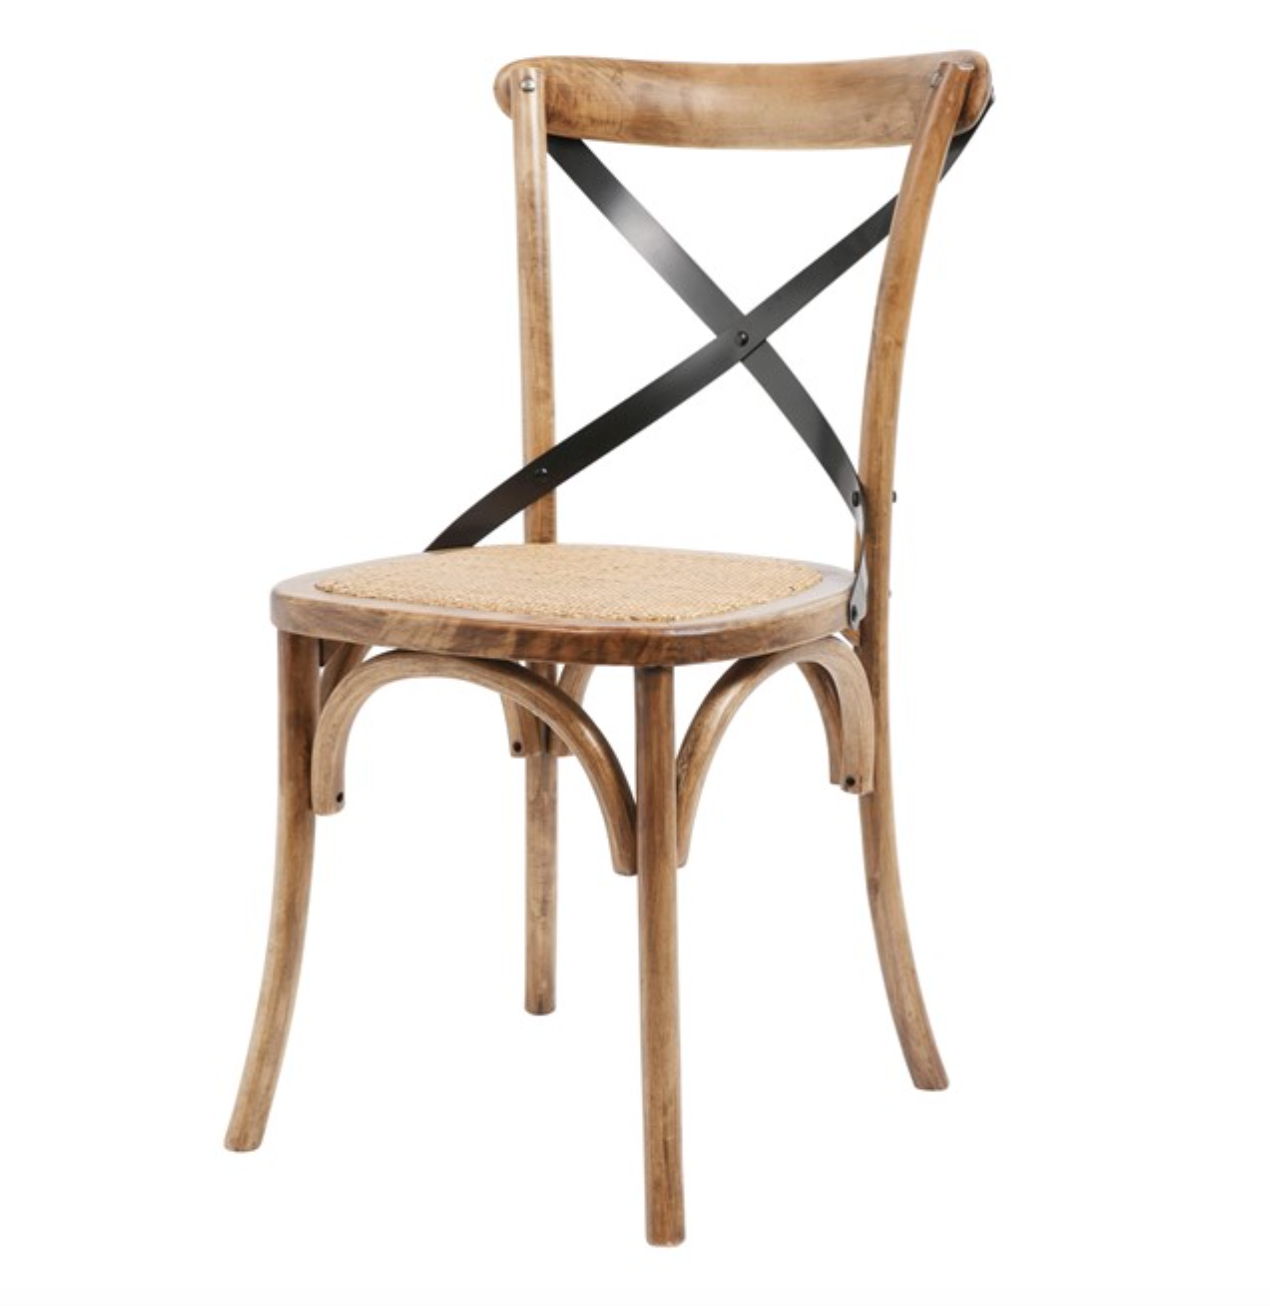 Medium Natural With White Grain X Back Chair X Back Mowg Crossback Chairs Dining Chair Design Farmhouse Table Chairs